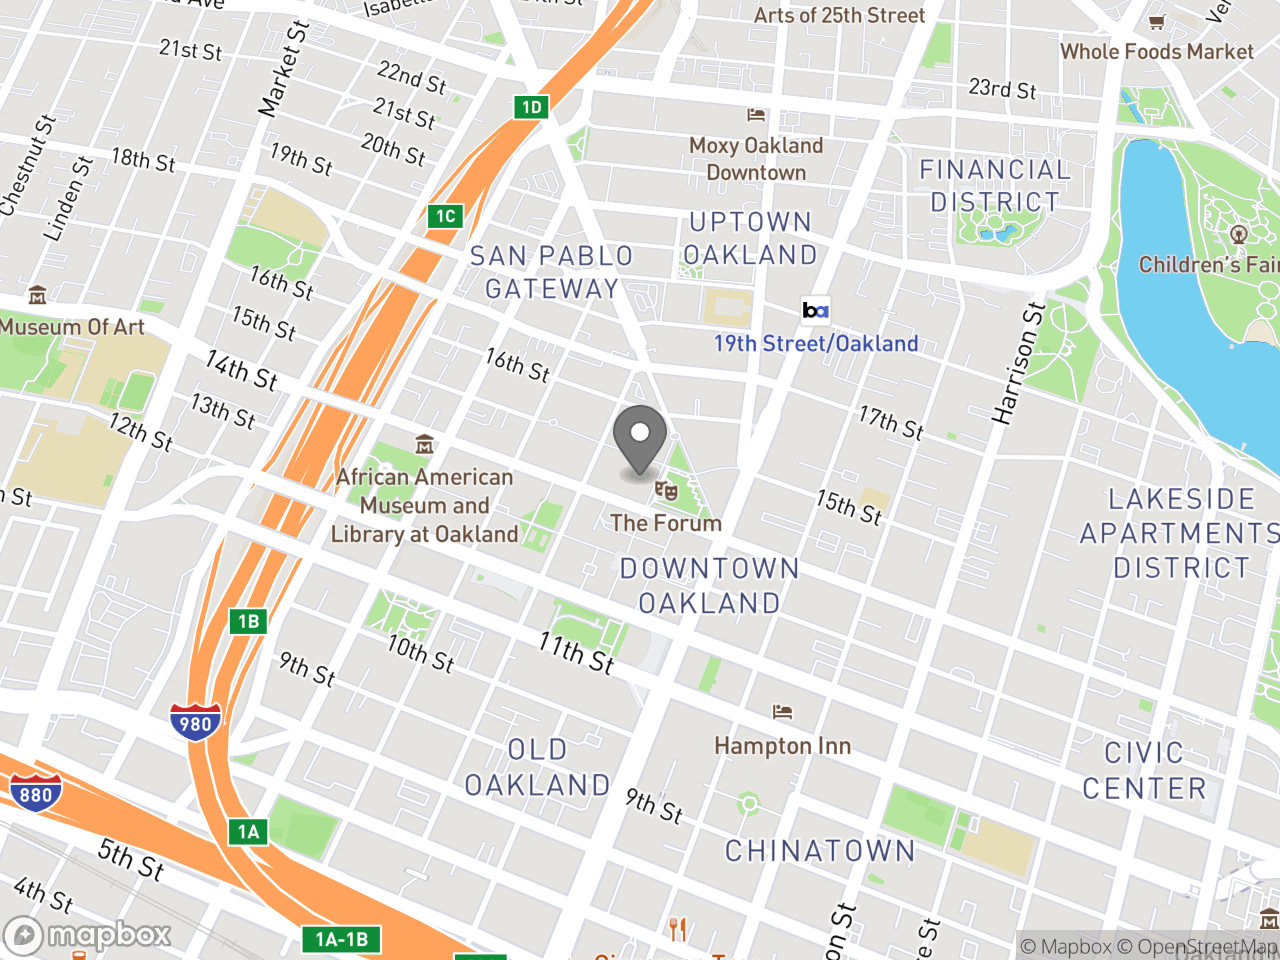 Map image for Bicyclist and Pedestrian Advisory Commission (BPAC) Meeting, January 18, 2018, located at 1 Frank H Ogawa Plaza in Oakland, CA 94612